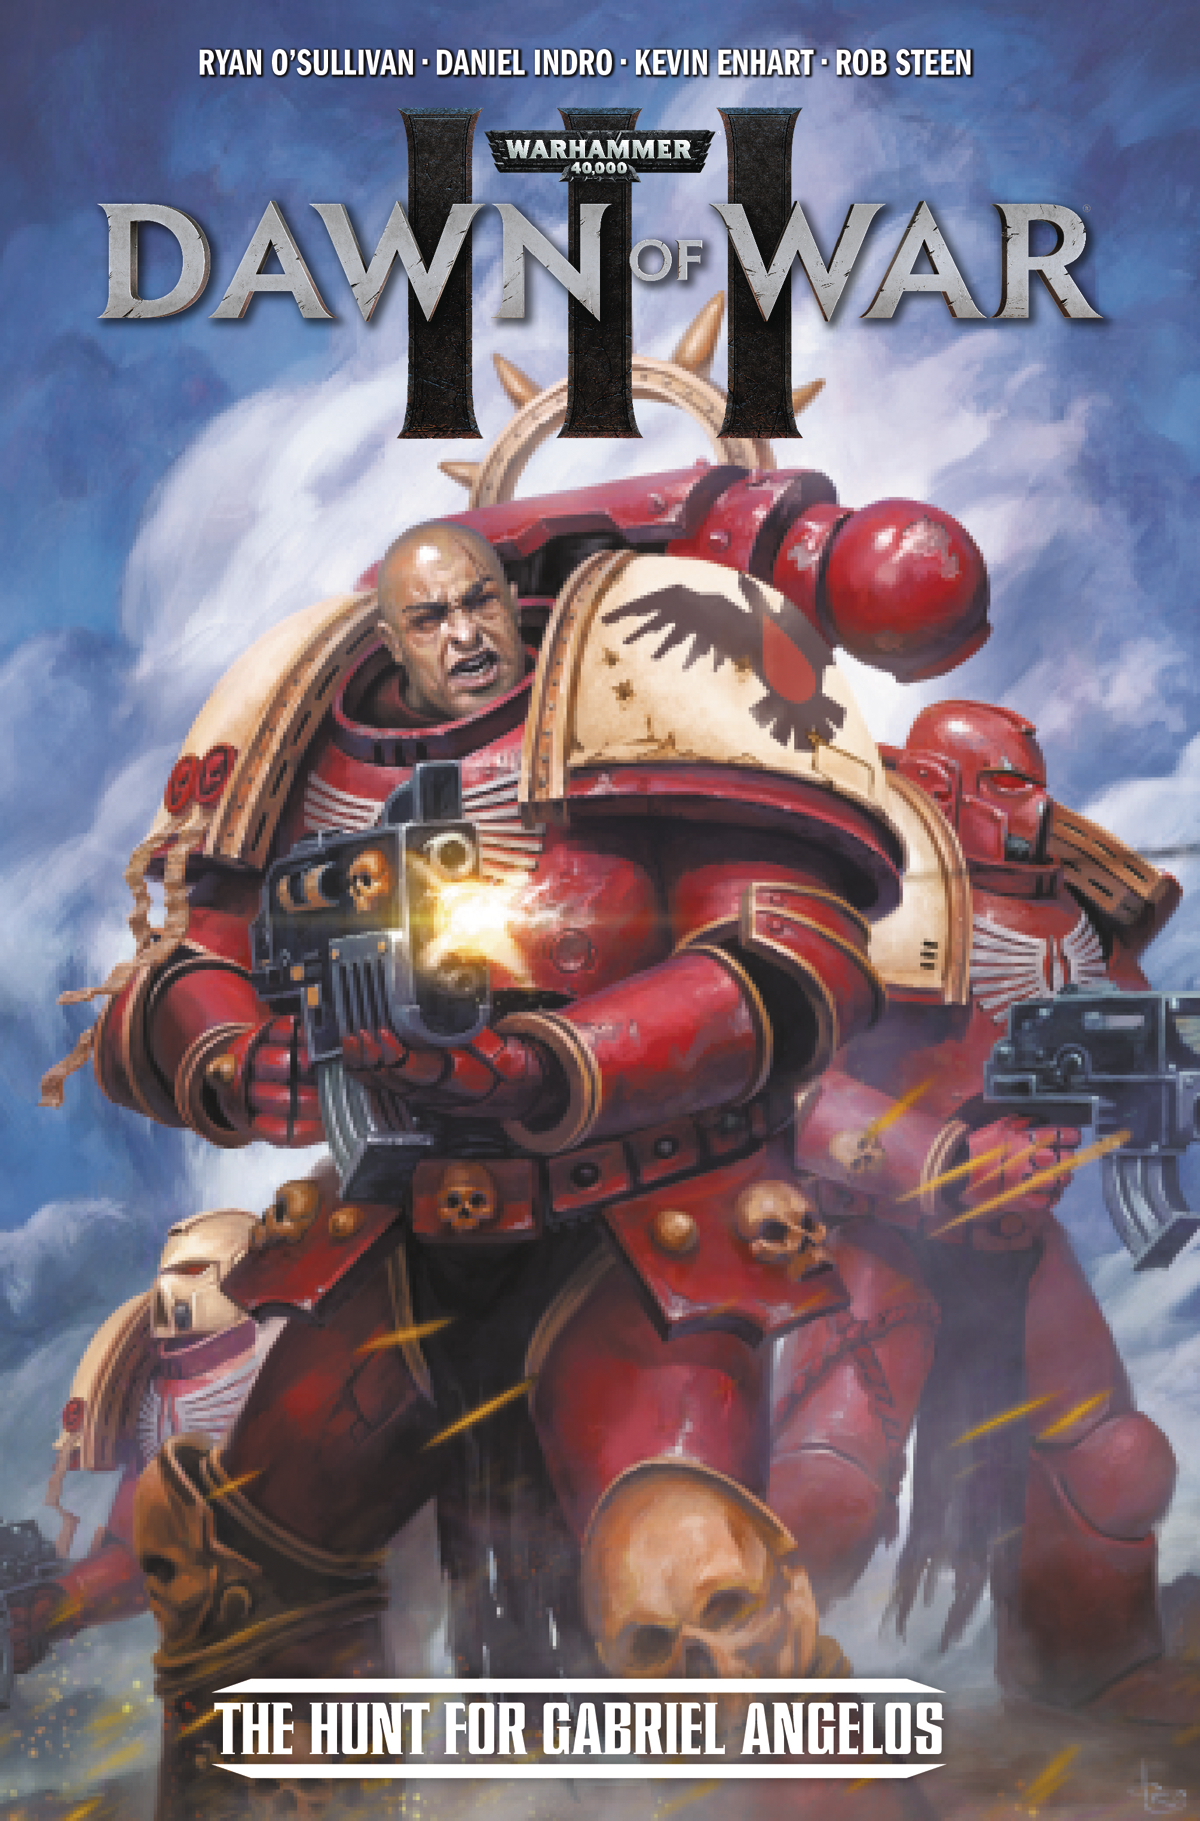 Warhammer 40k: Dawn of War TP